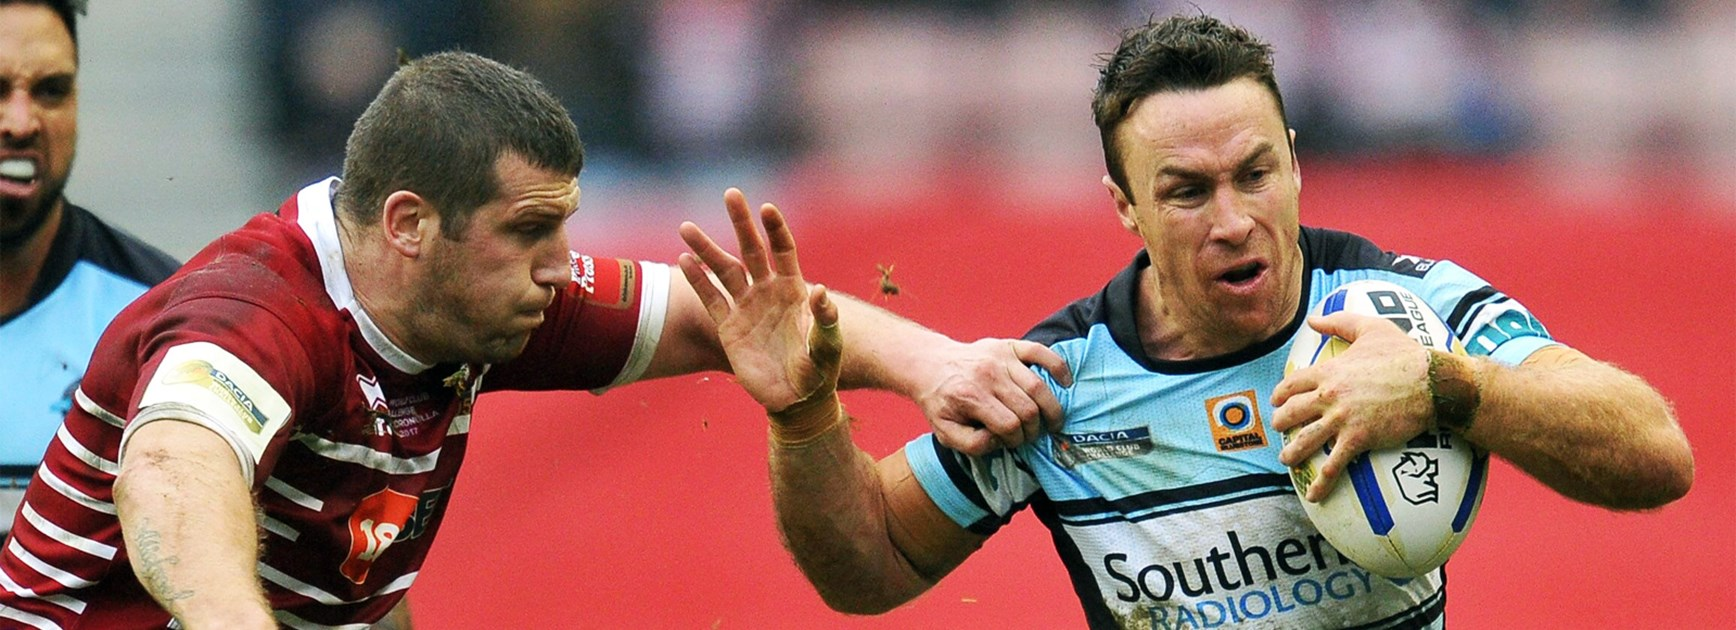 James Maloney takes a run for Cronulla in the World Club Challenge.